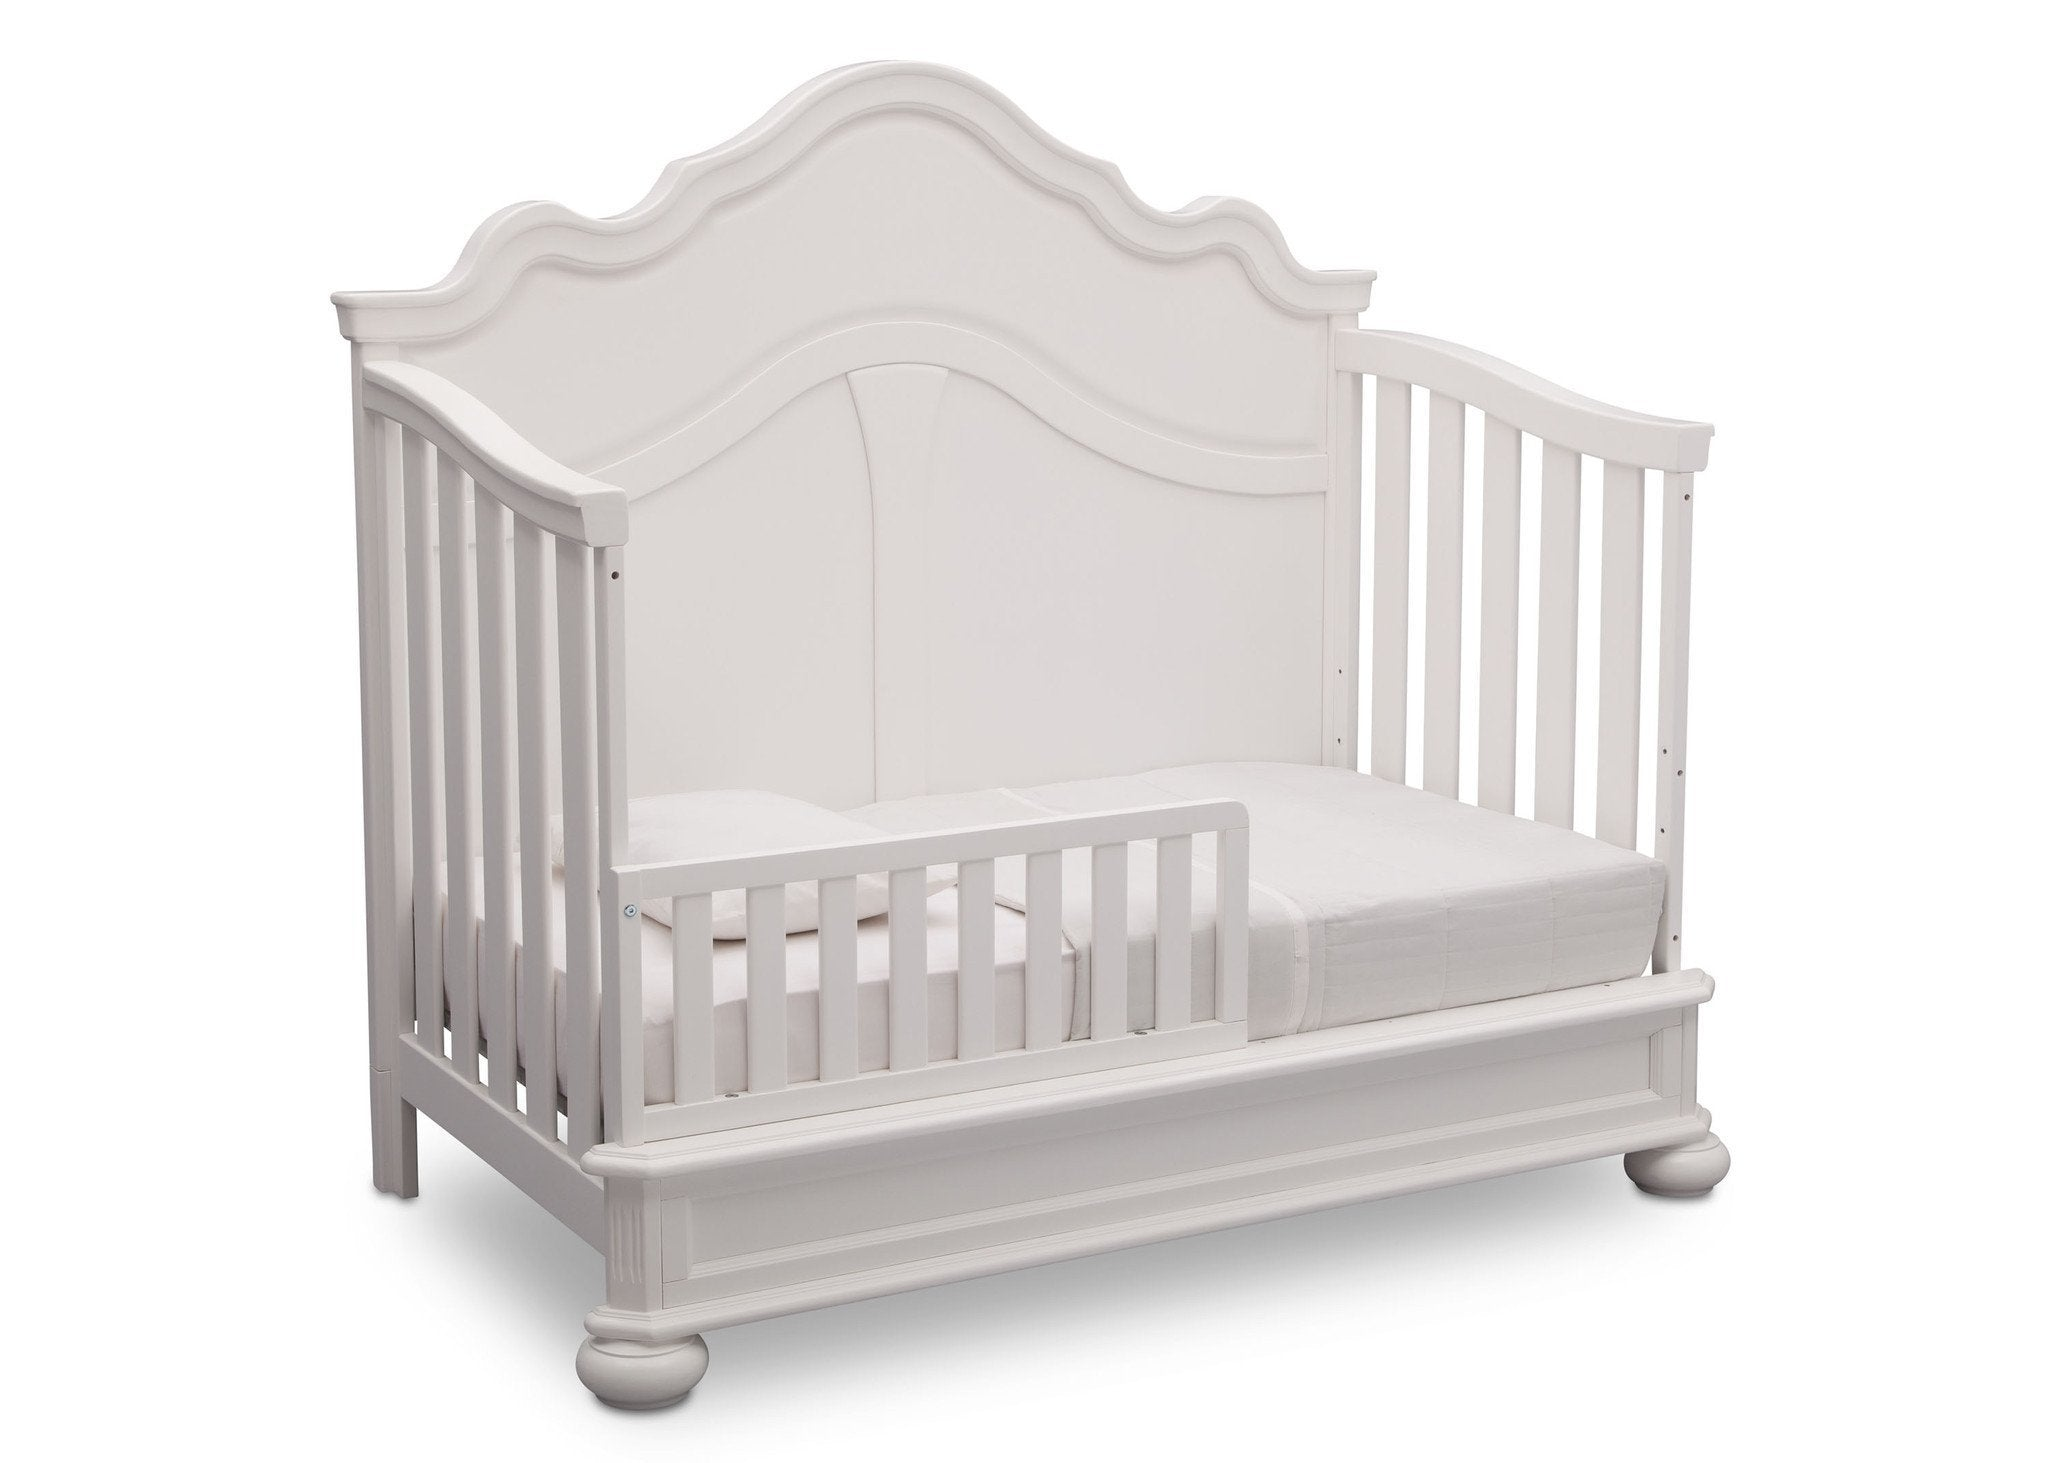 Simmons Kids Bianca (130) Peyton Crib n' more toddler bed conversion side view a4a